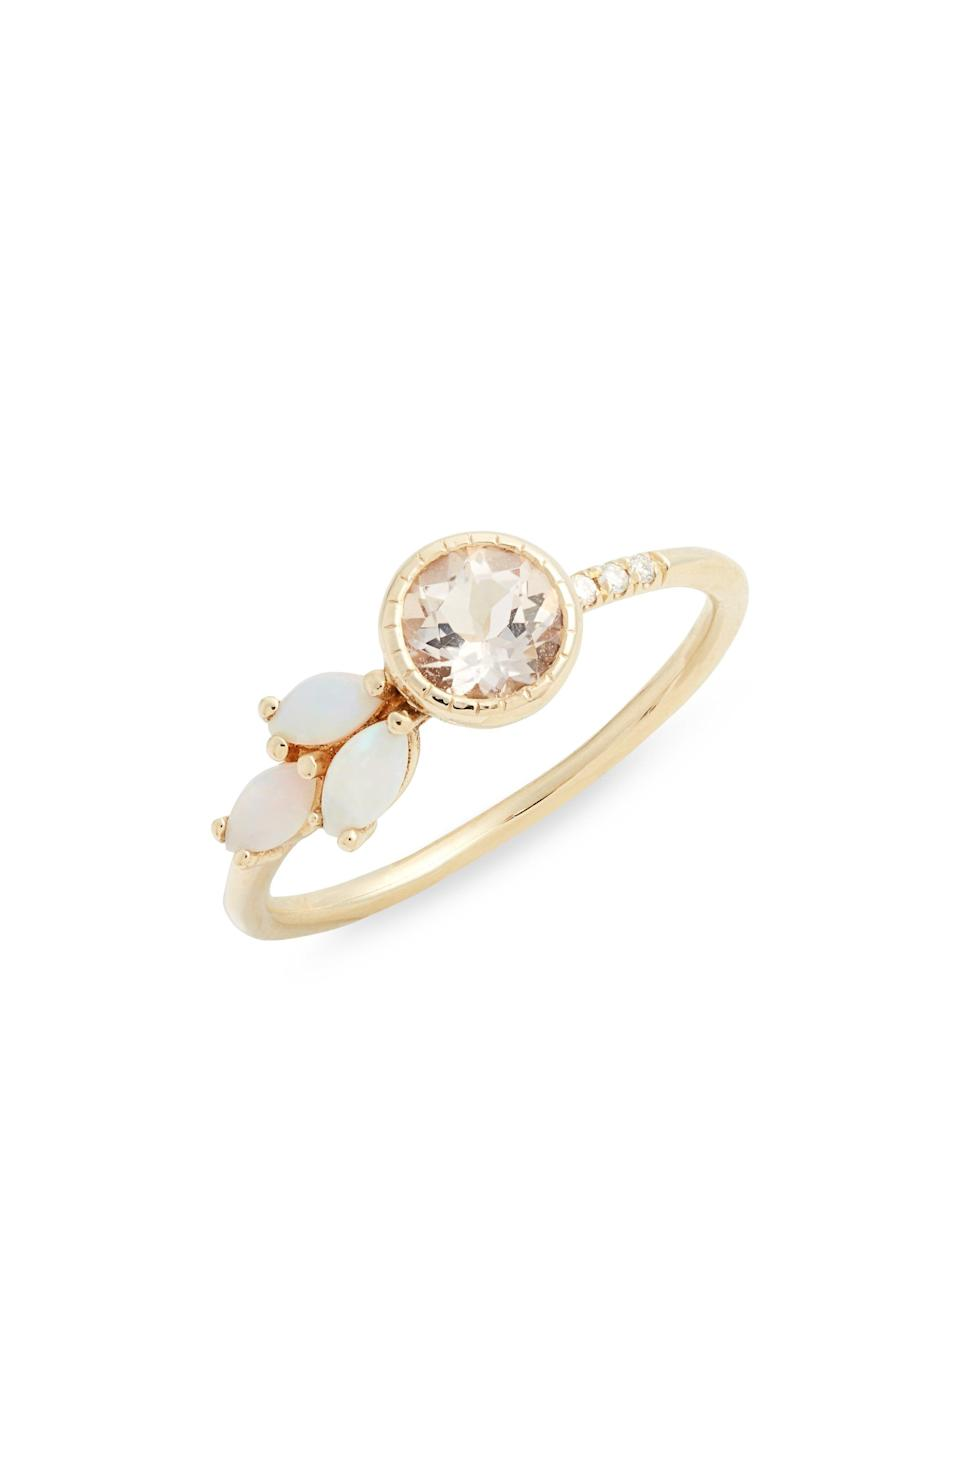 """<p><strong>JENNIE KWON DESIGNS</strong></p><p>nordstrom.com</p><p><strong>$825.00</strong></p><p><a href=""""https://go.redirectingat.com?id=74968X1596630&url=https%3A%2F%2Fwww.nordstrom.com%2Fs%2Fjennie-kwon-designs-morganite-diamond-opal-leaf-ring%2F5422431&sref=https%3A%2F%2Fwww.townandcountrymag.com%2Fstyle%2Fjewelry-and-watches%2Fg36027432%2Fbest-sustainable-jewelry-brands%2F"""" rel=""""nofollow noopener"""" target=""""_blank"""" data-ylk=""""slk:Shop Now"""" class=""""link rapid-noclick-resp"""">Shop Now</a></p><p>L.A. designer Jennie Kwon makes each of her delicate pieces from fairmined gold and ethically sourced gemstones. Her romantic jewels also make for <a href=""""https://www.jenniekwondesigns.com/collections/bridal"""" rel=""""nofollow noopener"""" target=""""_blank"""" data-ylk=""""slk:stunning engagement rings"""" class=""""link rapid-noclick-resp"""">stunning engagement rings</a>. </p>"""